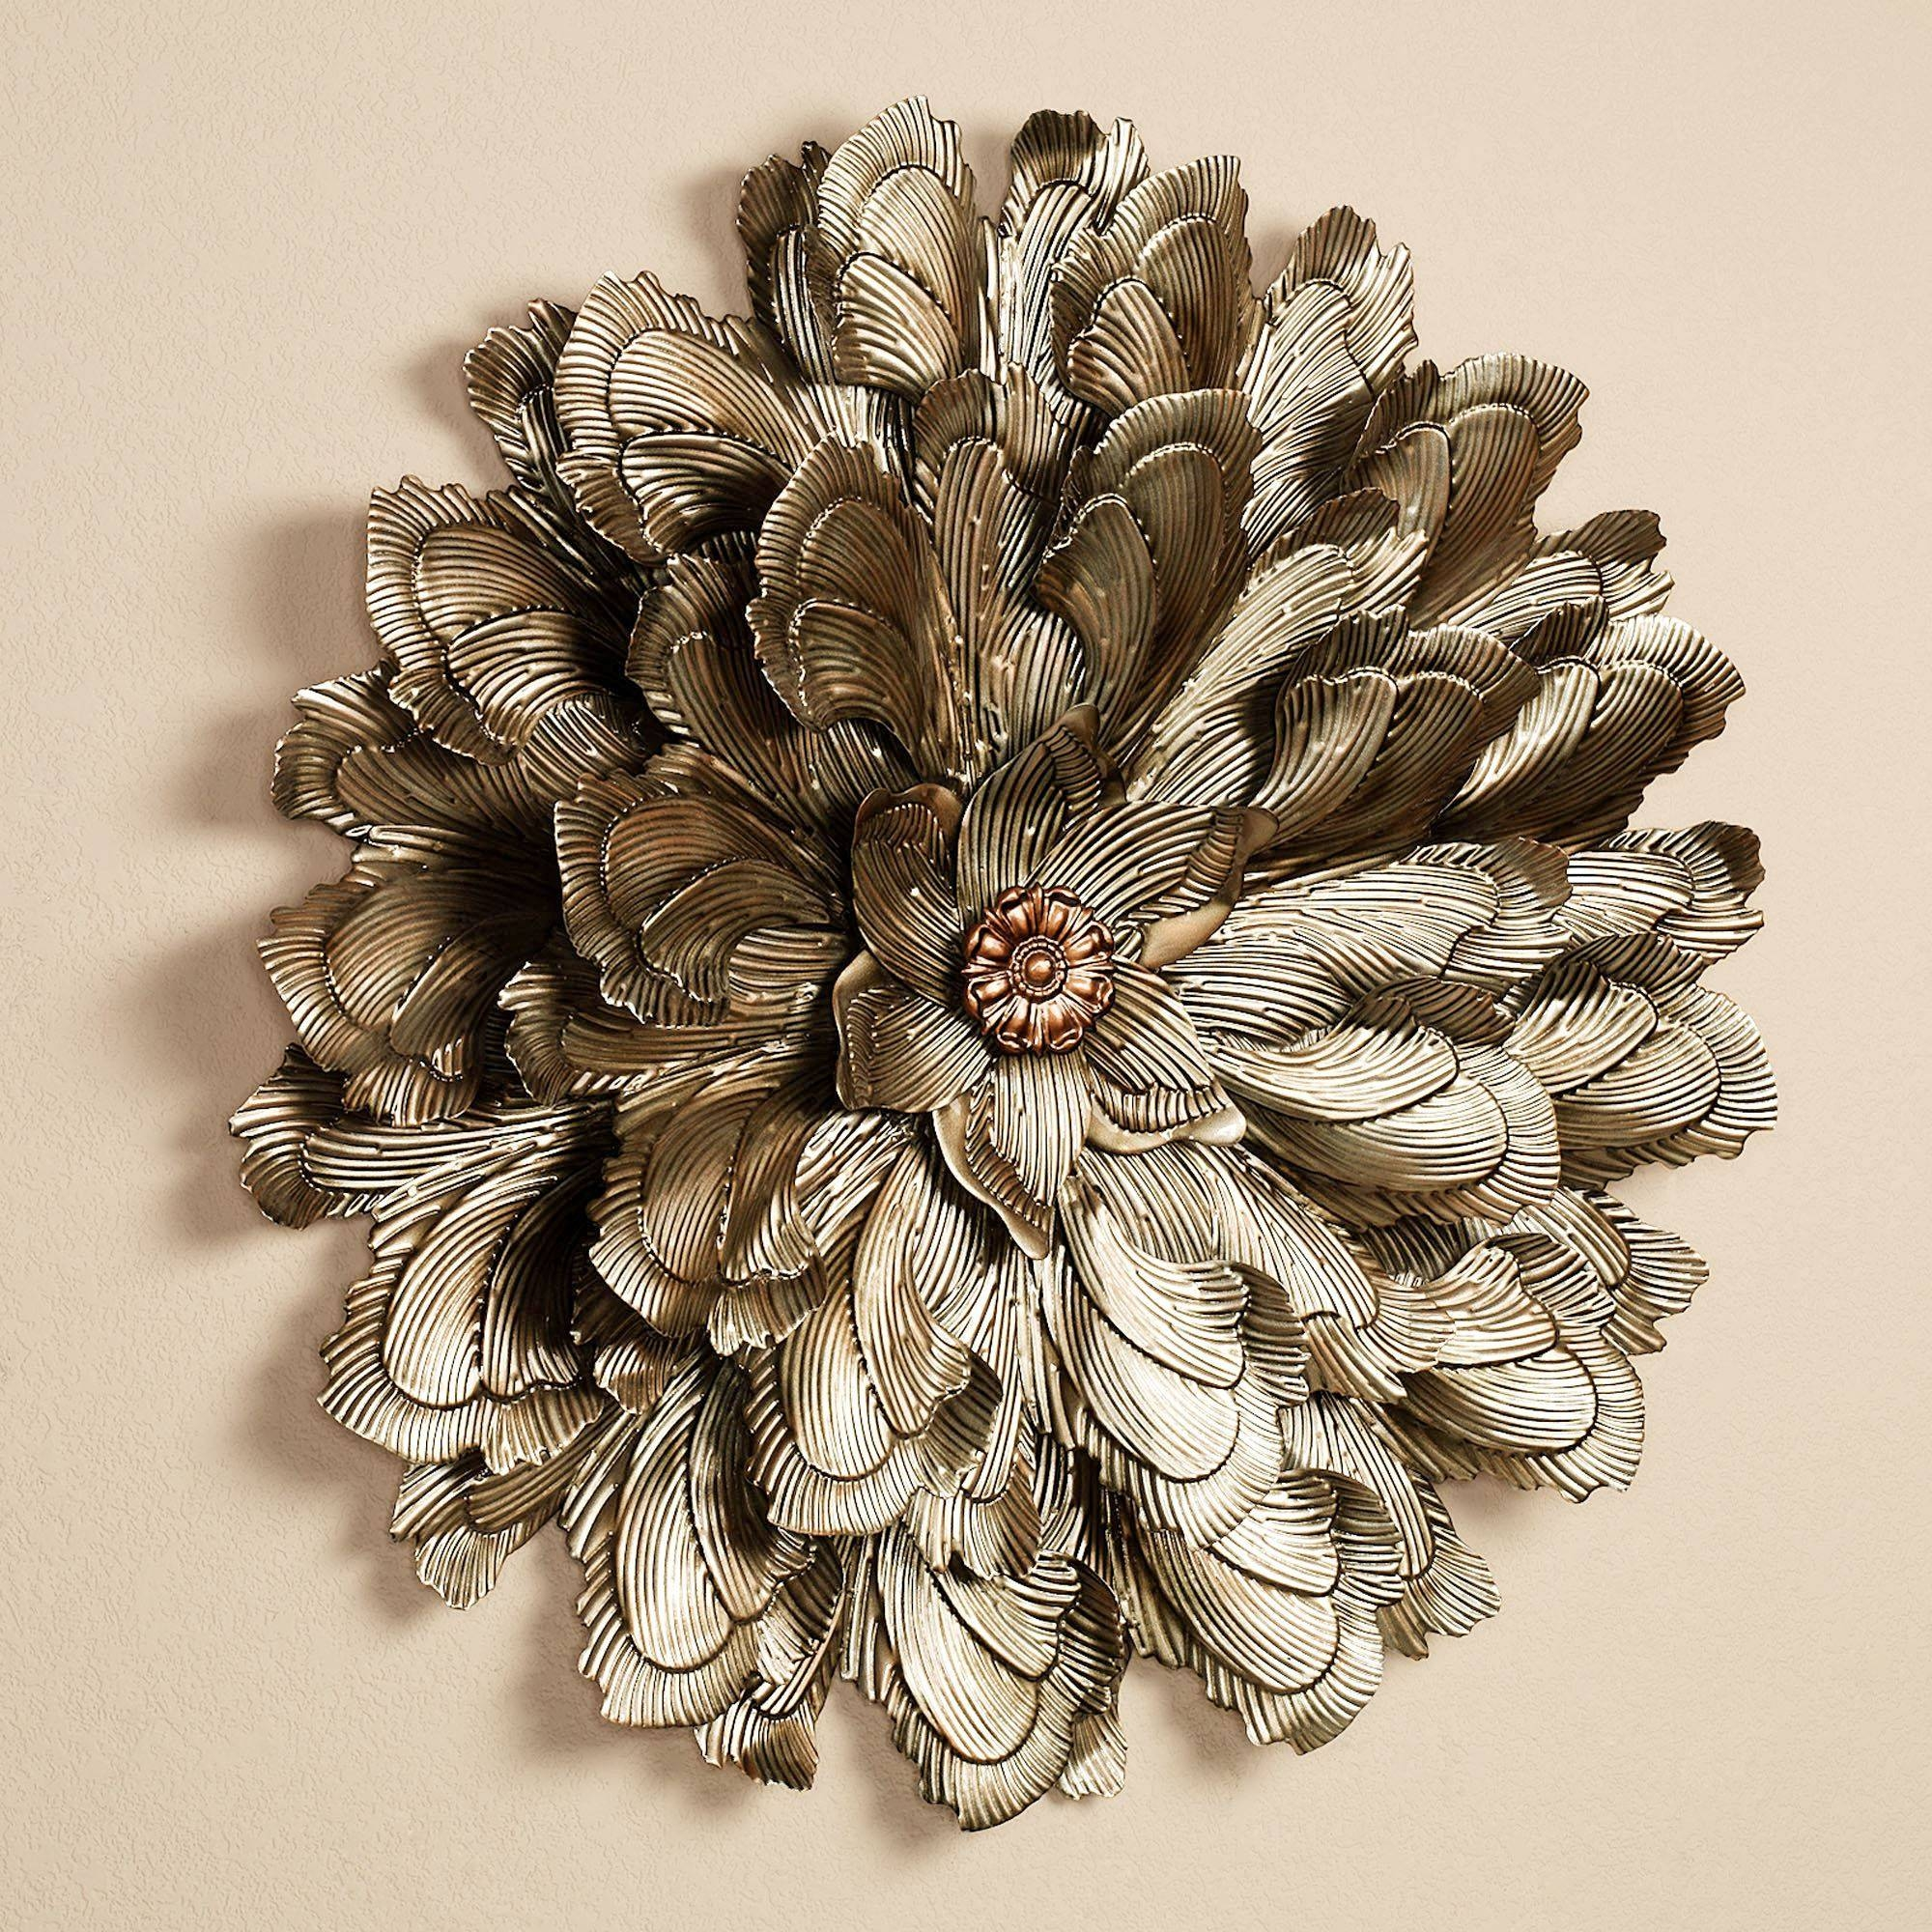 41 Silver Metal Wall Art Flowers, Home Metal Wall Art Wall Decor Intended For Most Popular Metal Wall Art Flowers (View 1 of 20)